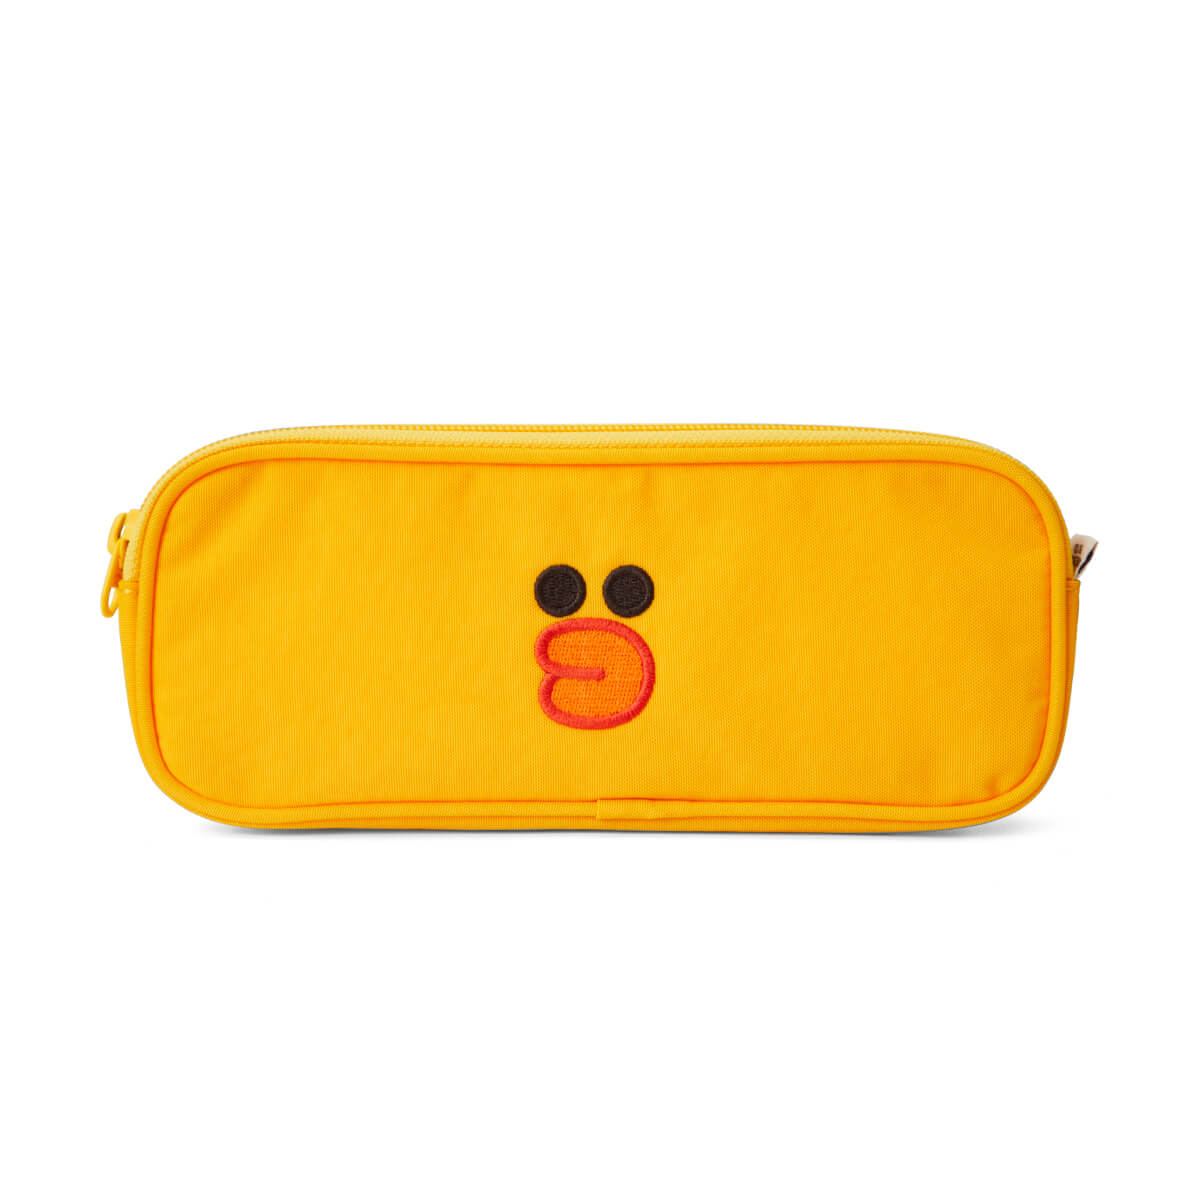 LINE FRIENDS BROWN & FRIENDS SALLY Nylon Pencil Case